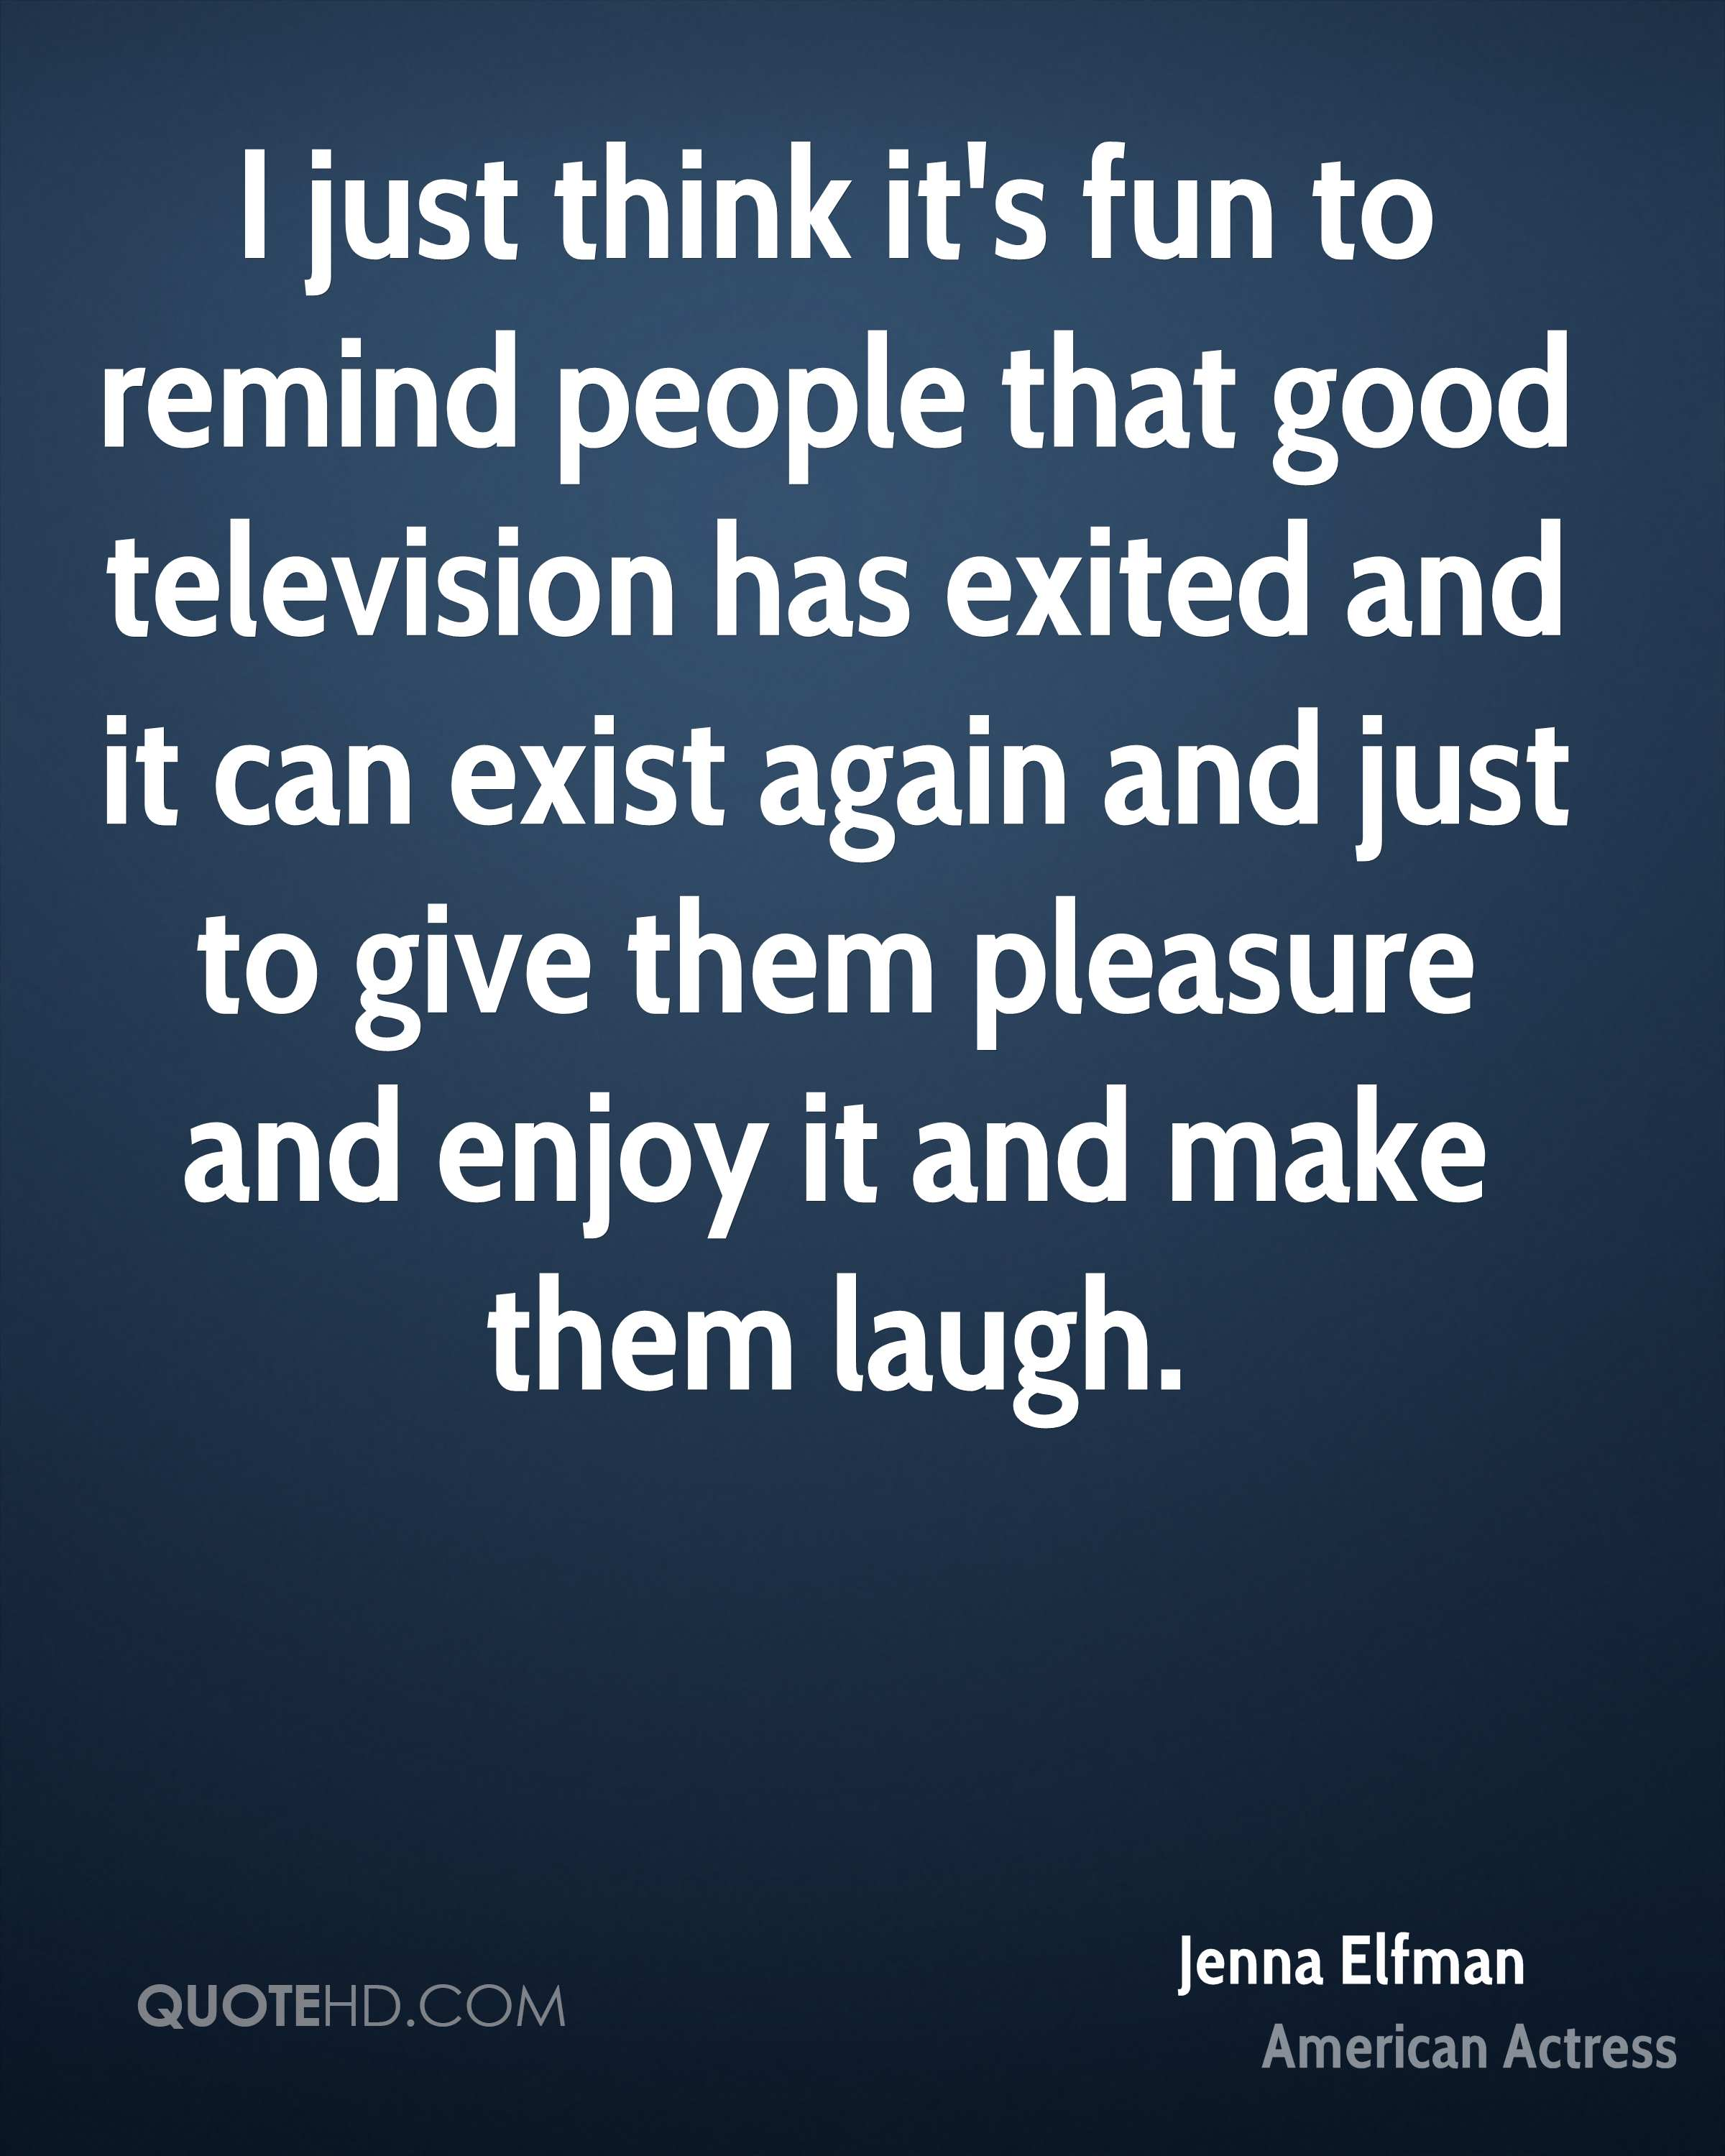 I just think it's fun to remind people that good television has exited and it can exist again and just to give them pleasure and enjoy it and make them laugh.